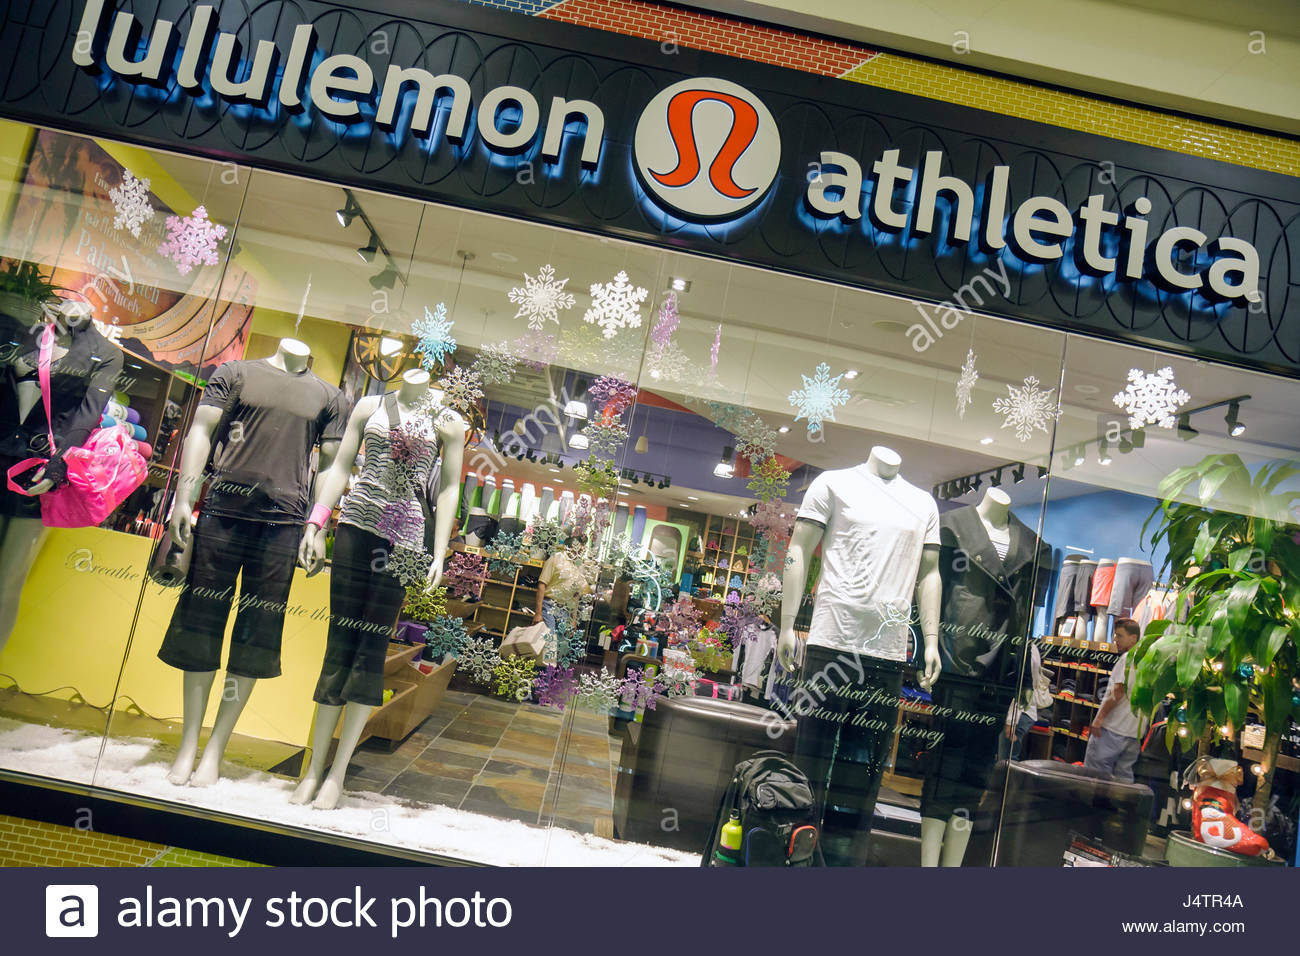 Palm Beach Florida Gardens The Gardens Mall Lululemon Athletica yoga apparel athletic wear exercise clothing store - Stock Image